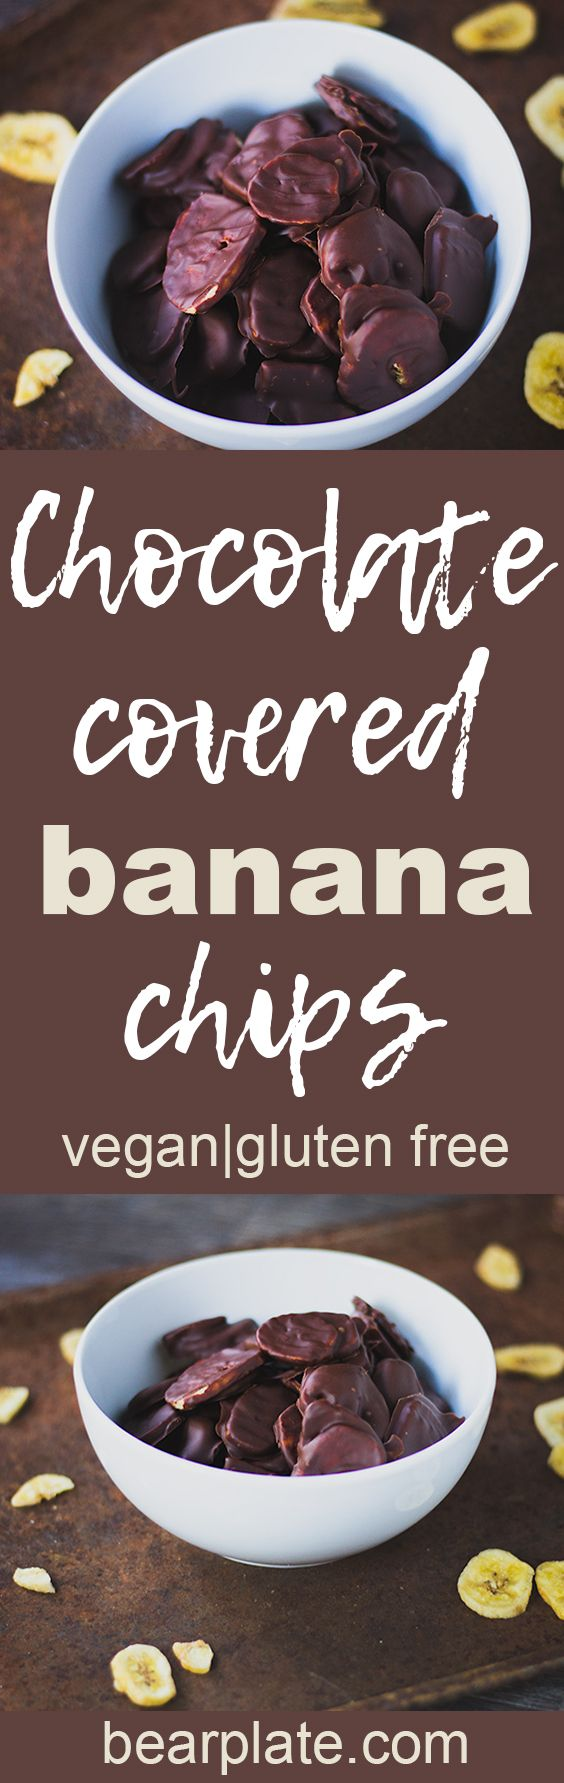 DELICIOUS!!! Chocolate Covered Banana Chips! #vegan #glutenfree #plantbased #snack #dessert #recipe #food